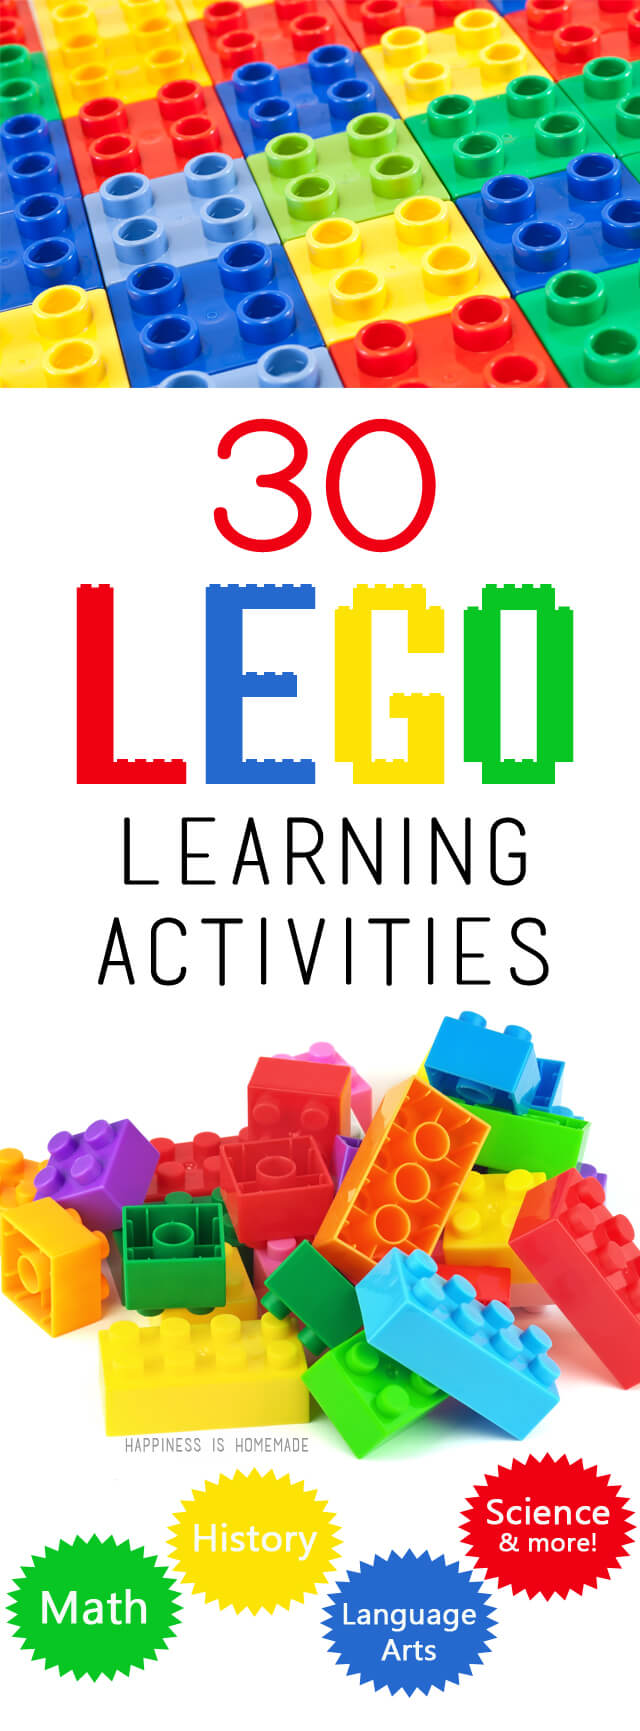 30 LEGO Learning Activities - Happiness is Homemade